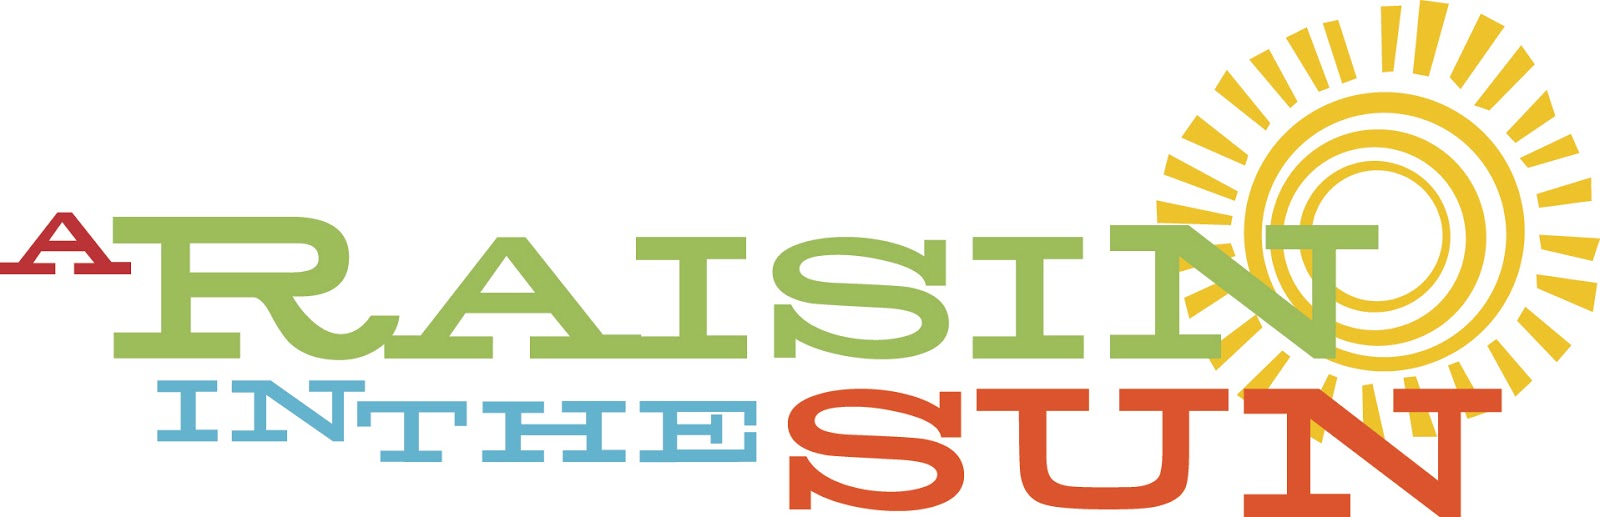 raisin in the sun motif Lesson plans for a raisin in the sun by lorraine hansberry include a summary, themes, symbols,  a raisin in the sun themes, symbols, and motifs.